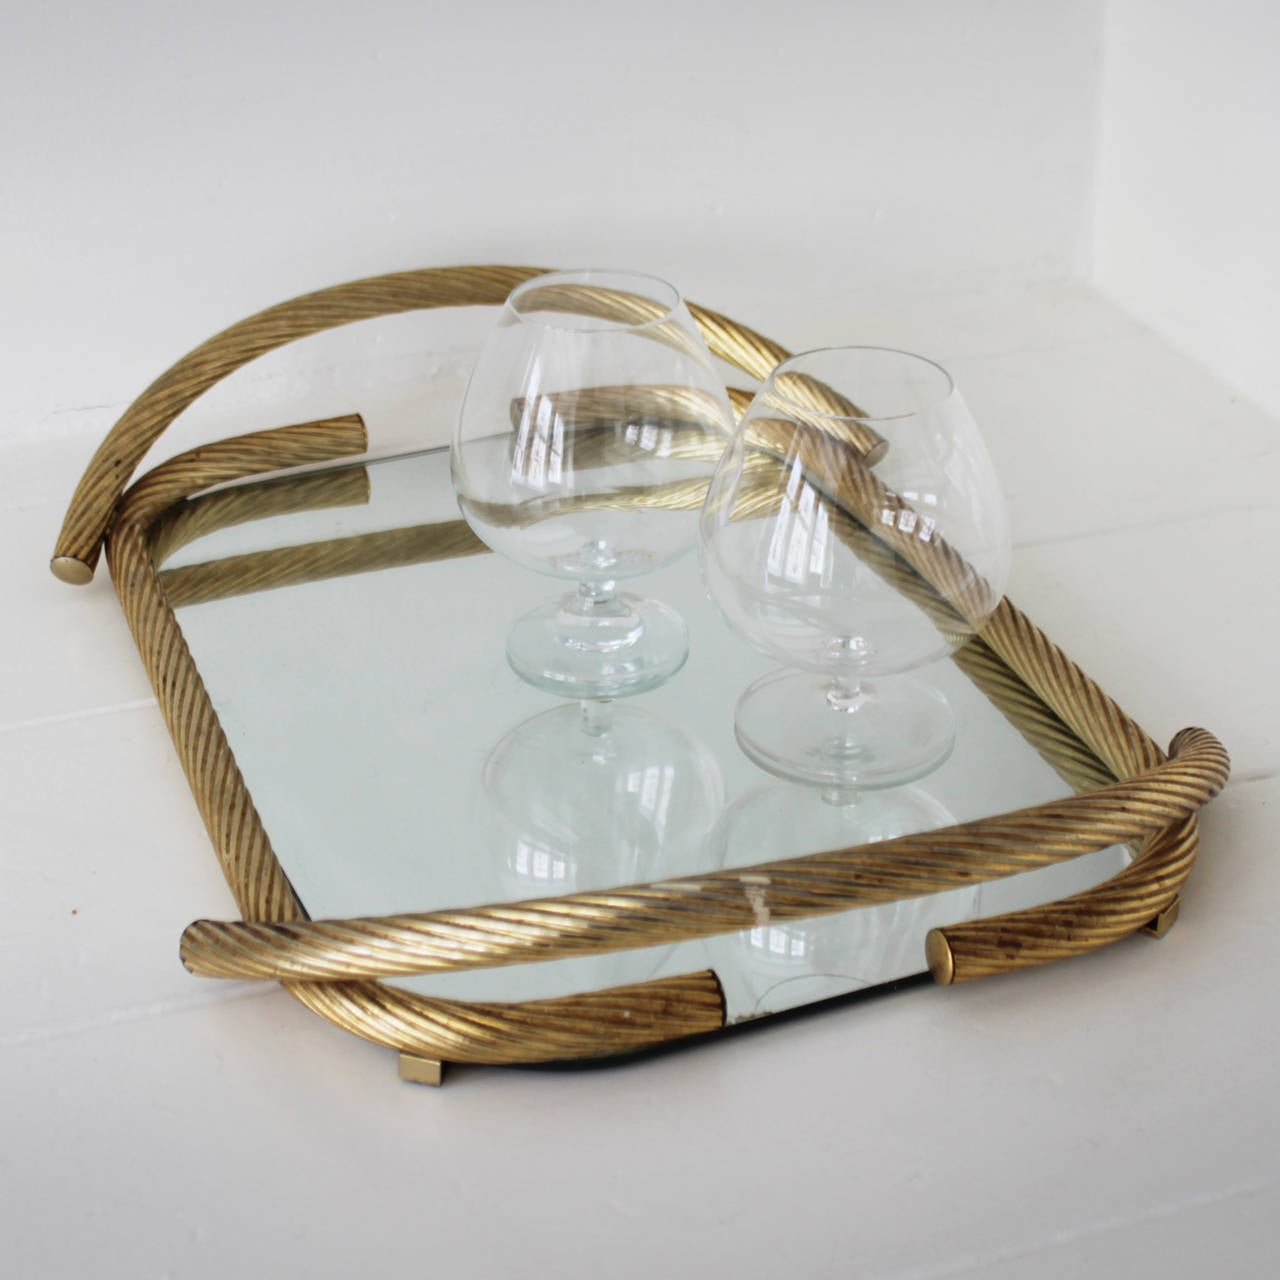 Late 20th Century French Rope Mirror Serving Tray For Sale